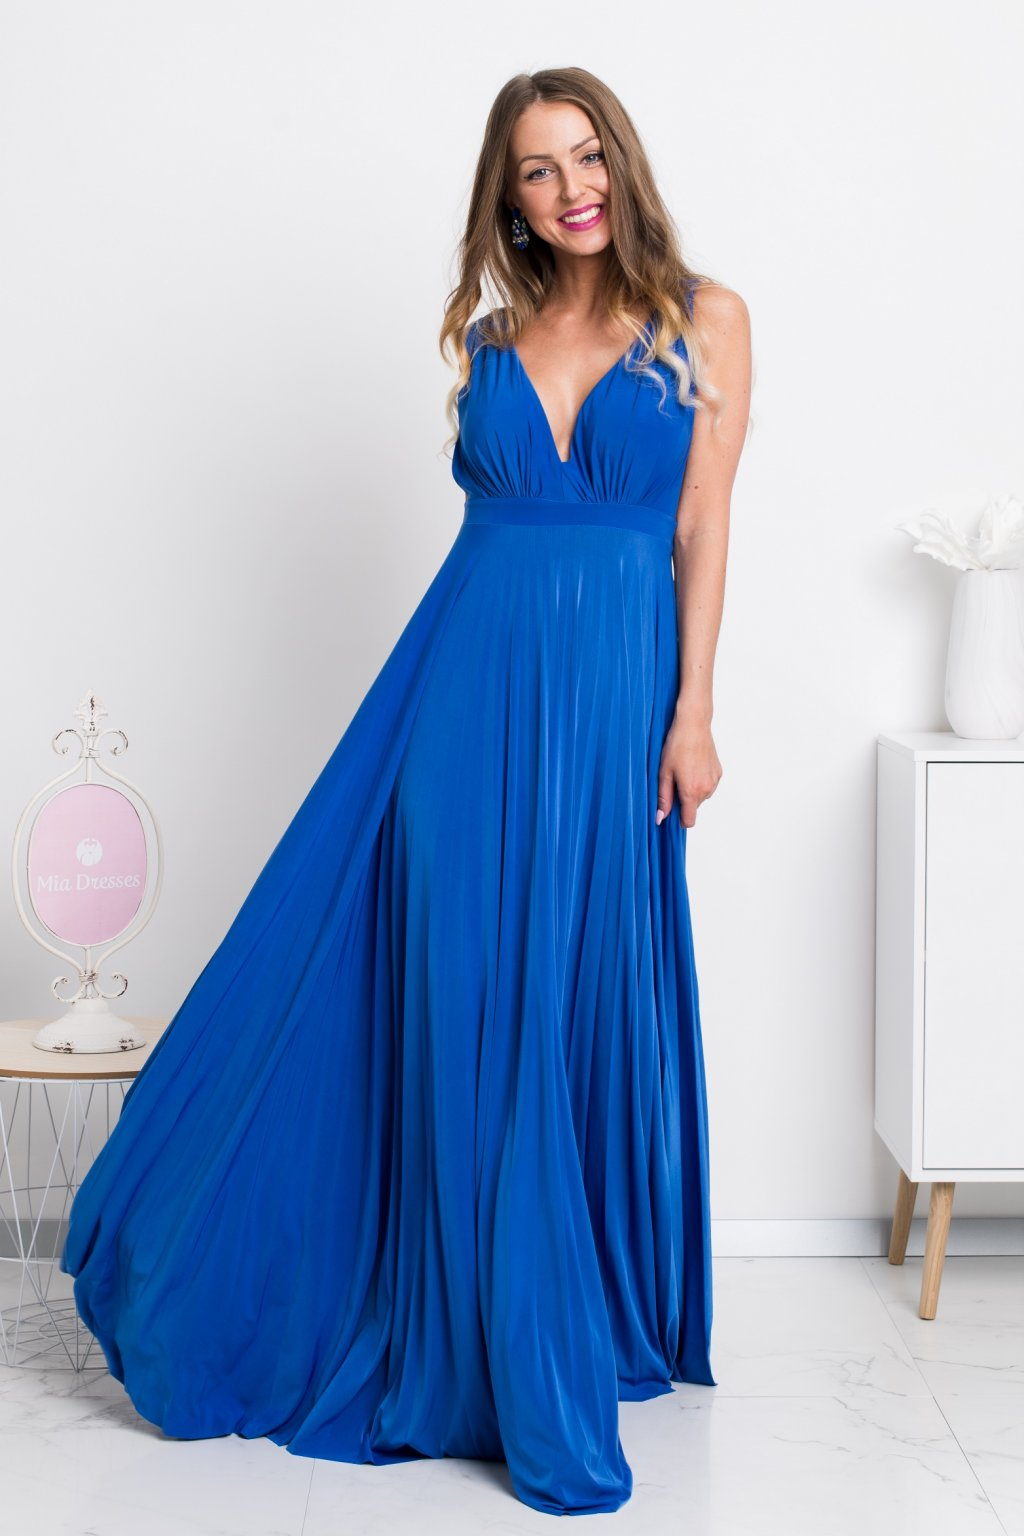 Blue formal dress with pleated skirt